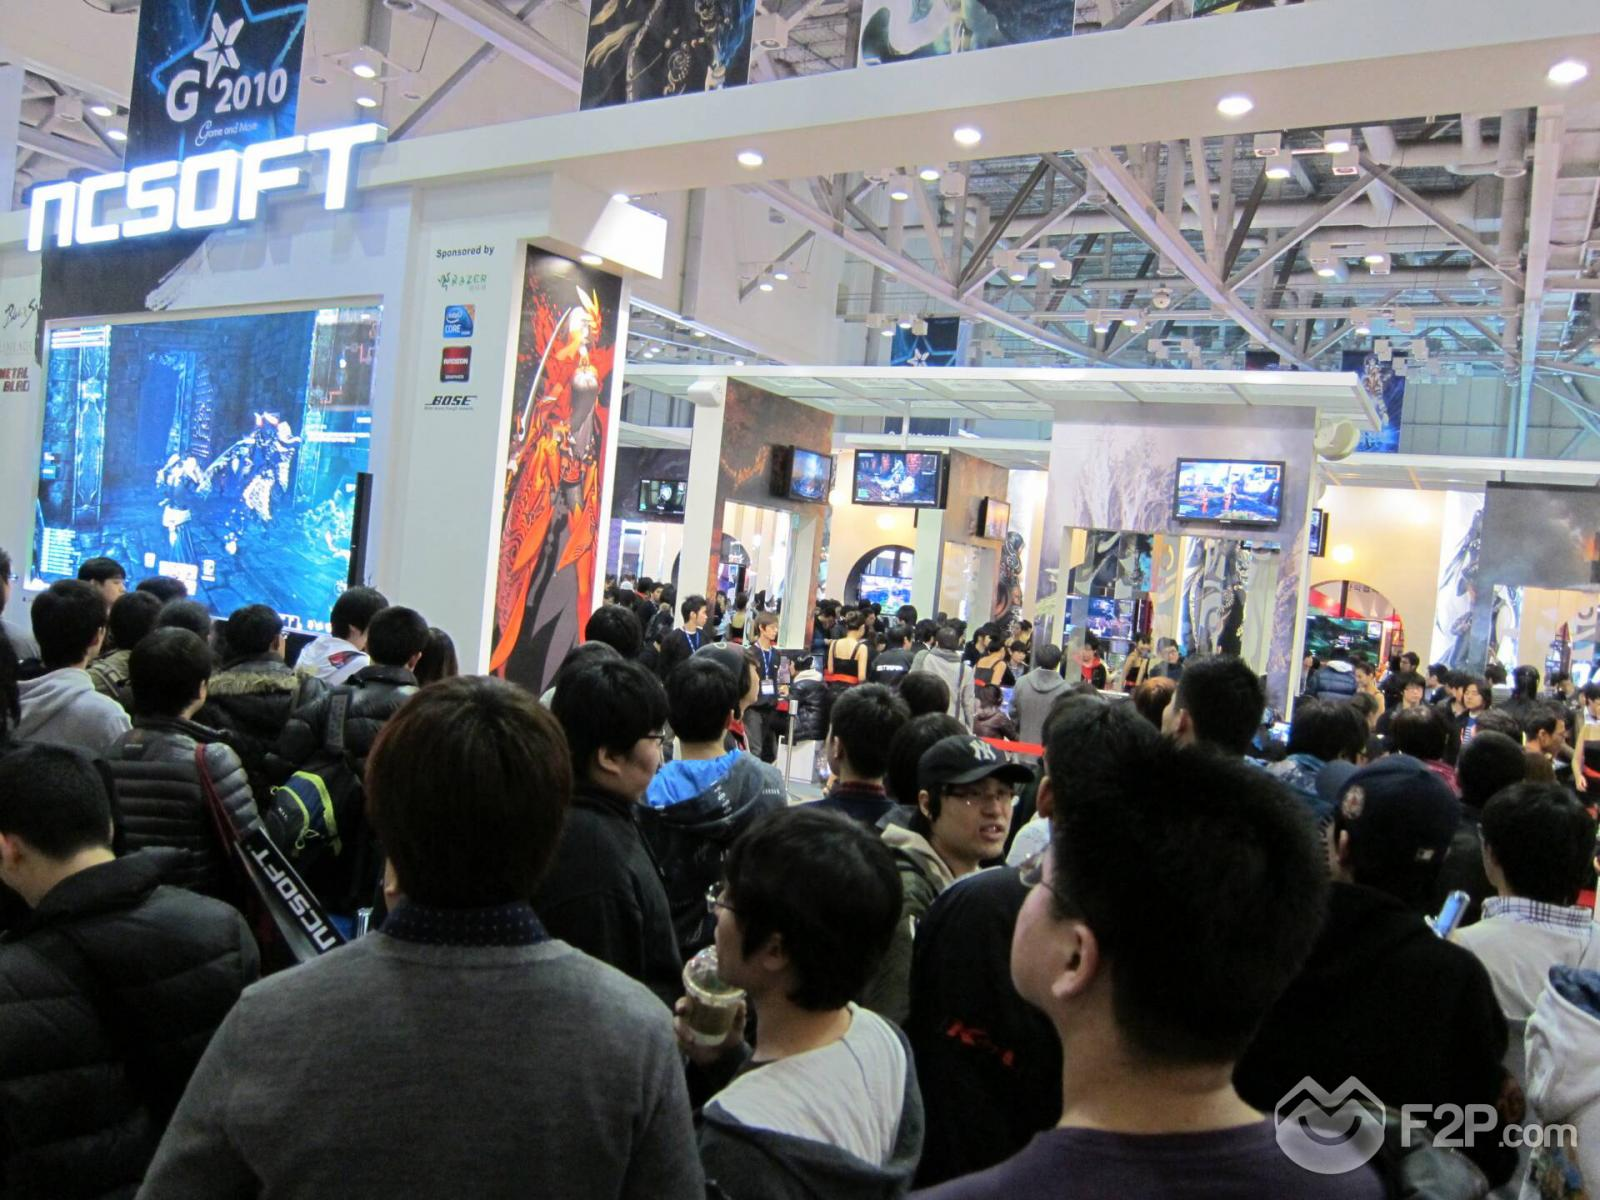 Click image for larger version.Name:Gstar 2010 F2P first day 28.jpgViews:60Size:239.4 KBID:1880